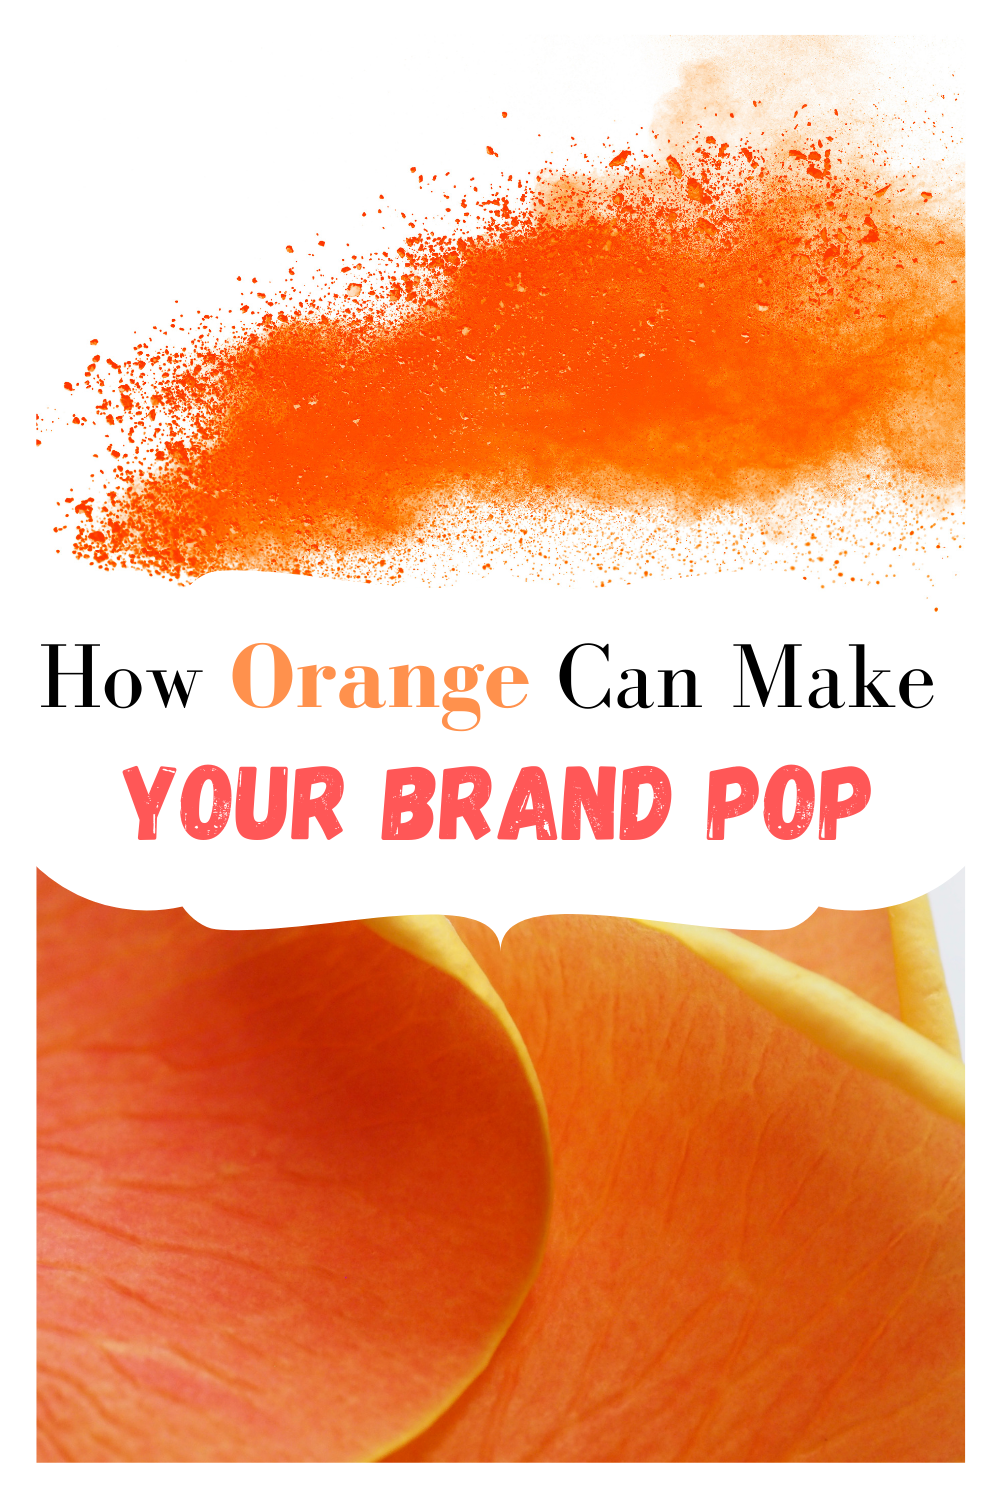 How Orange Can Make Your Brand Pop